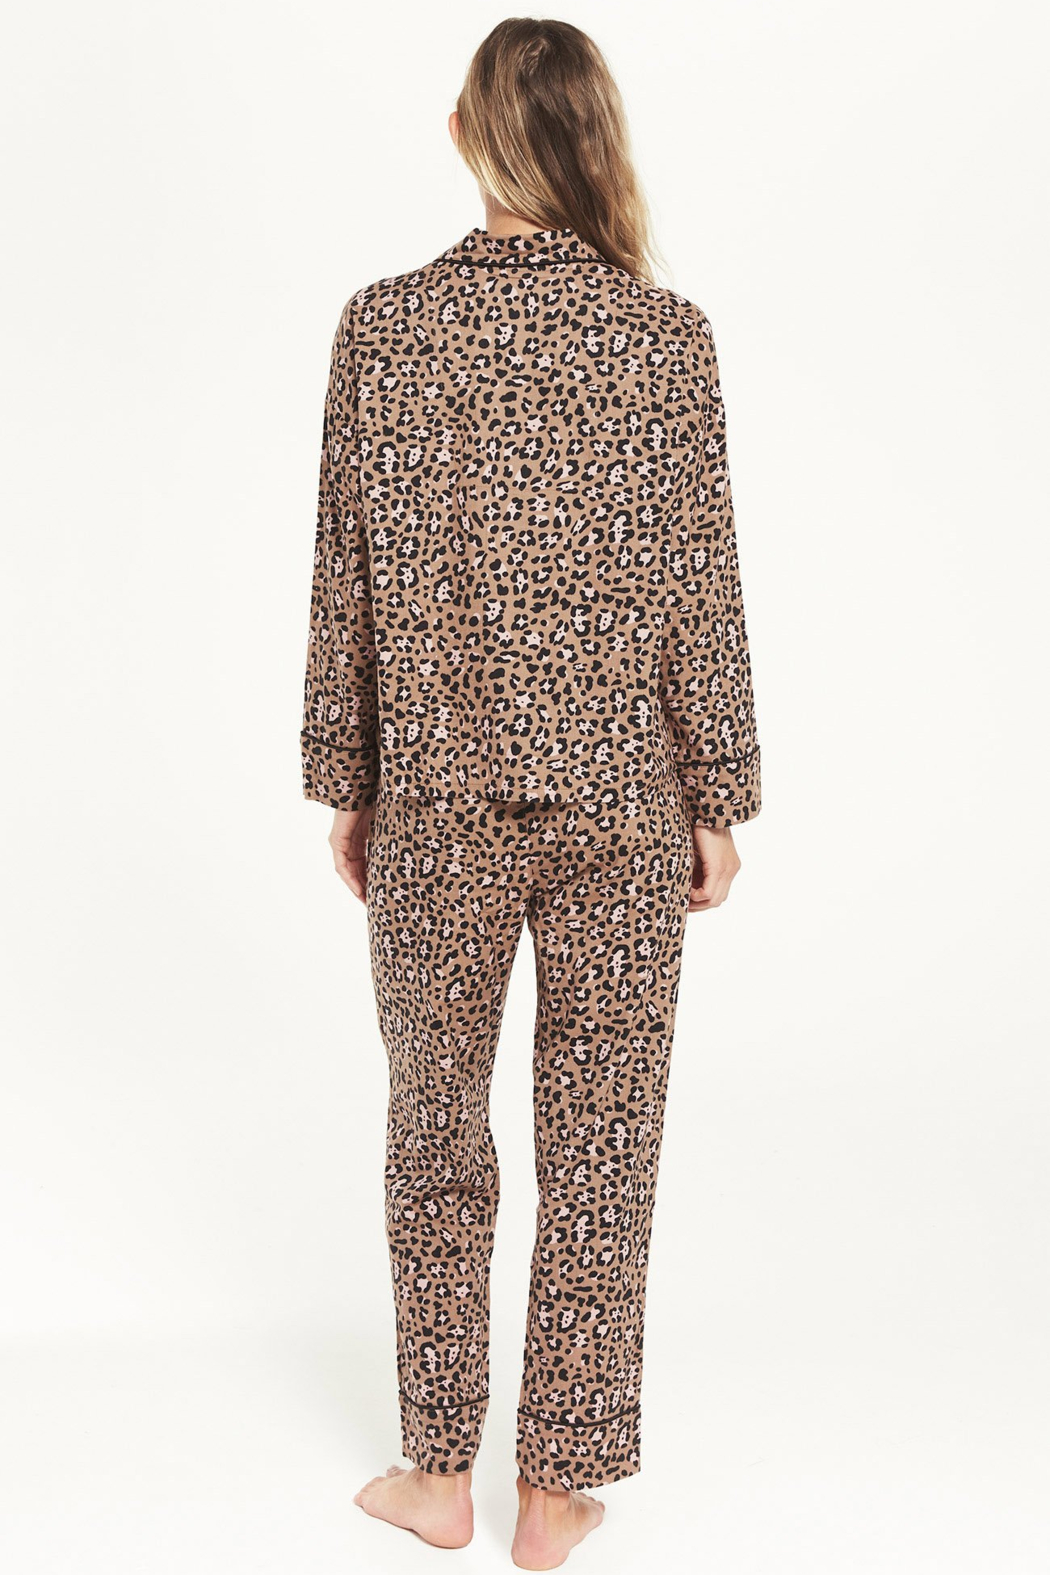 z supply DREAM STATE LEOPARD PJ SET - Front Full Image